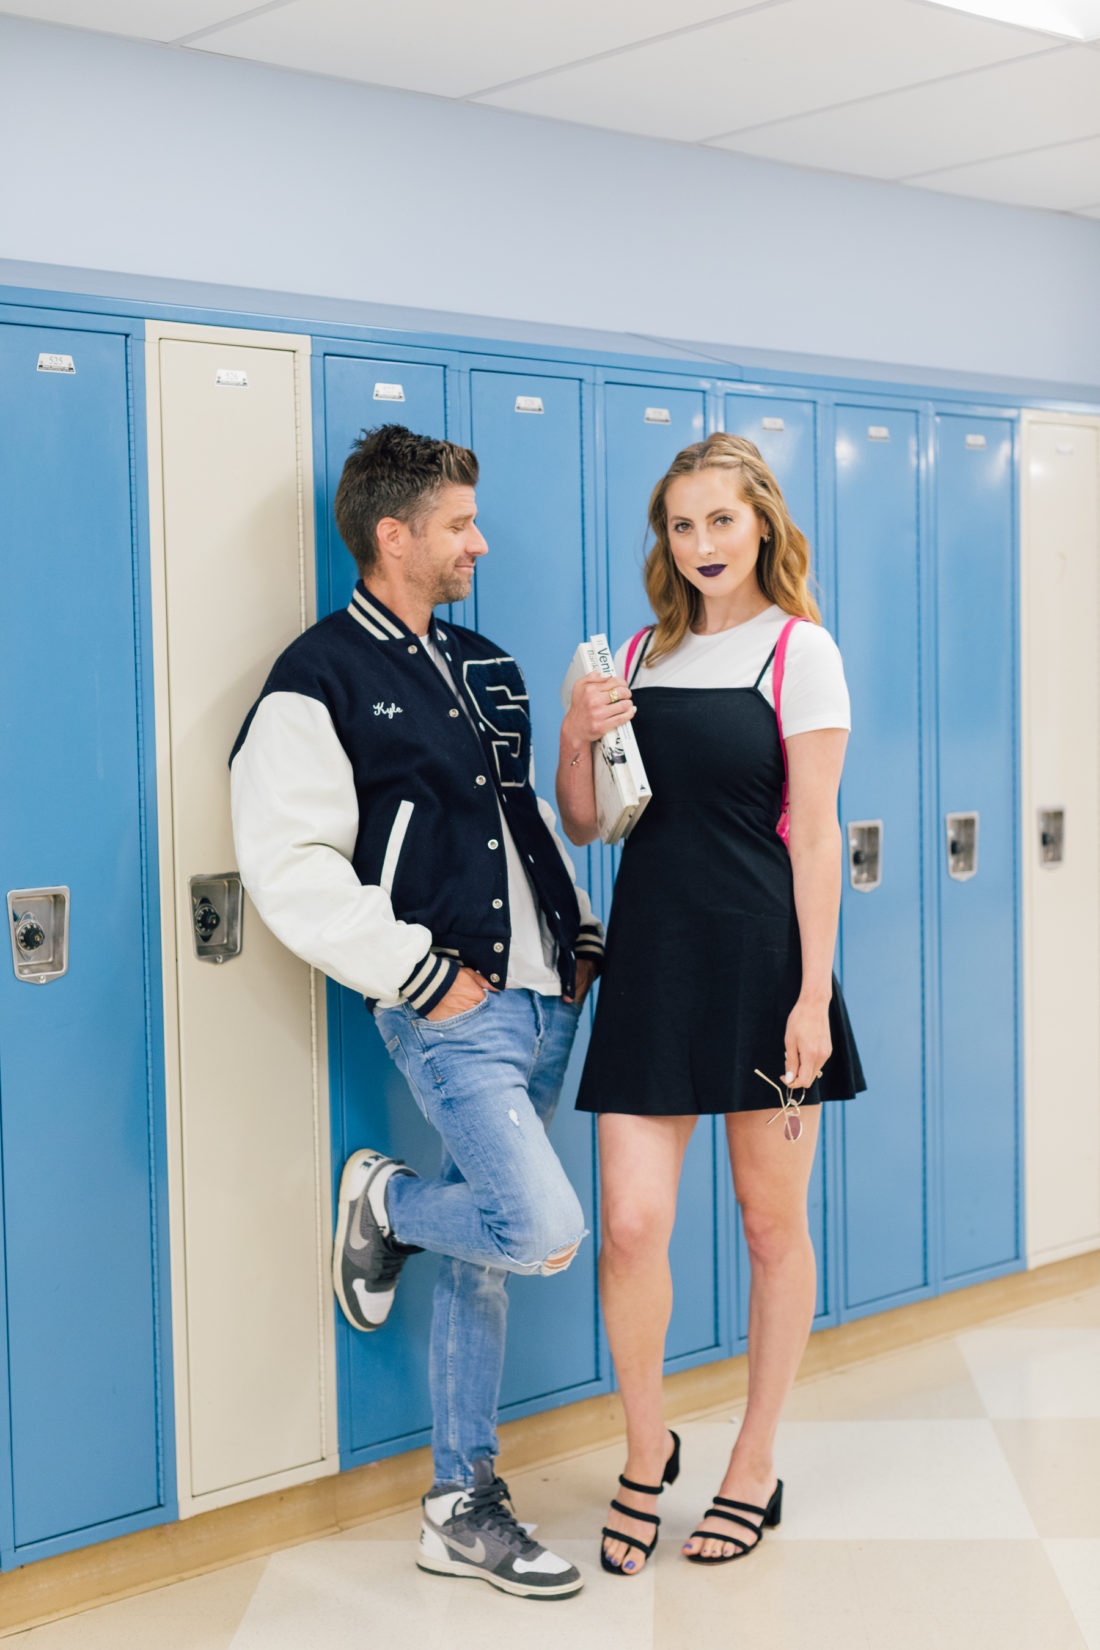 Eva Amurri Martino and husband Kyle wear 90's gear and walk through the halls of his high school